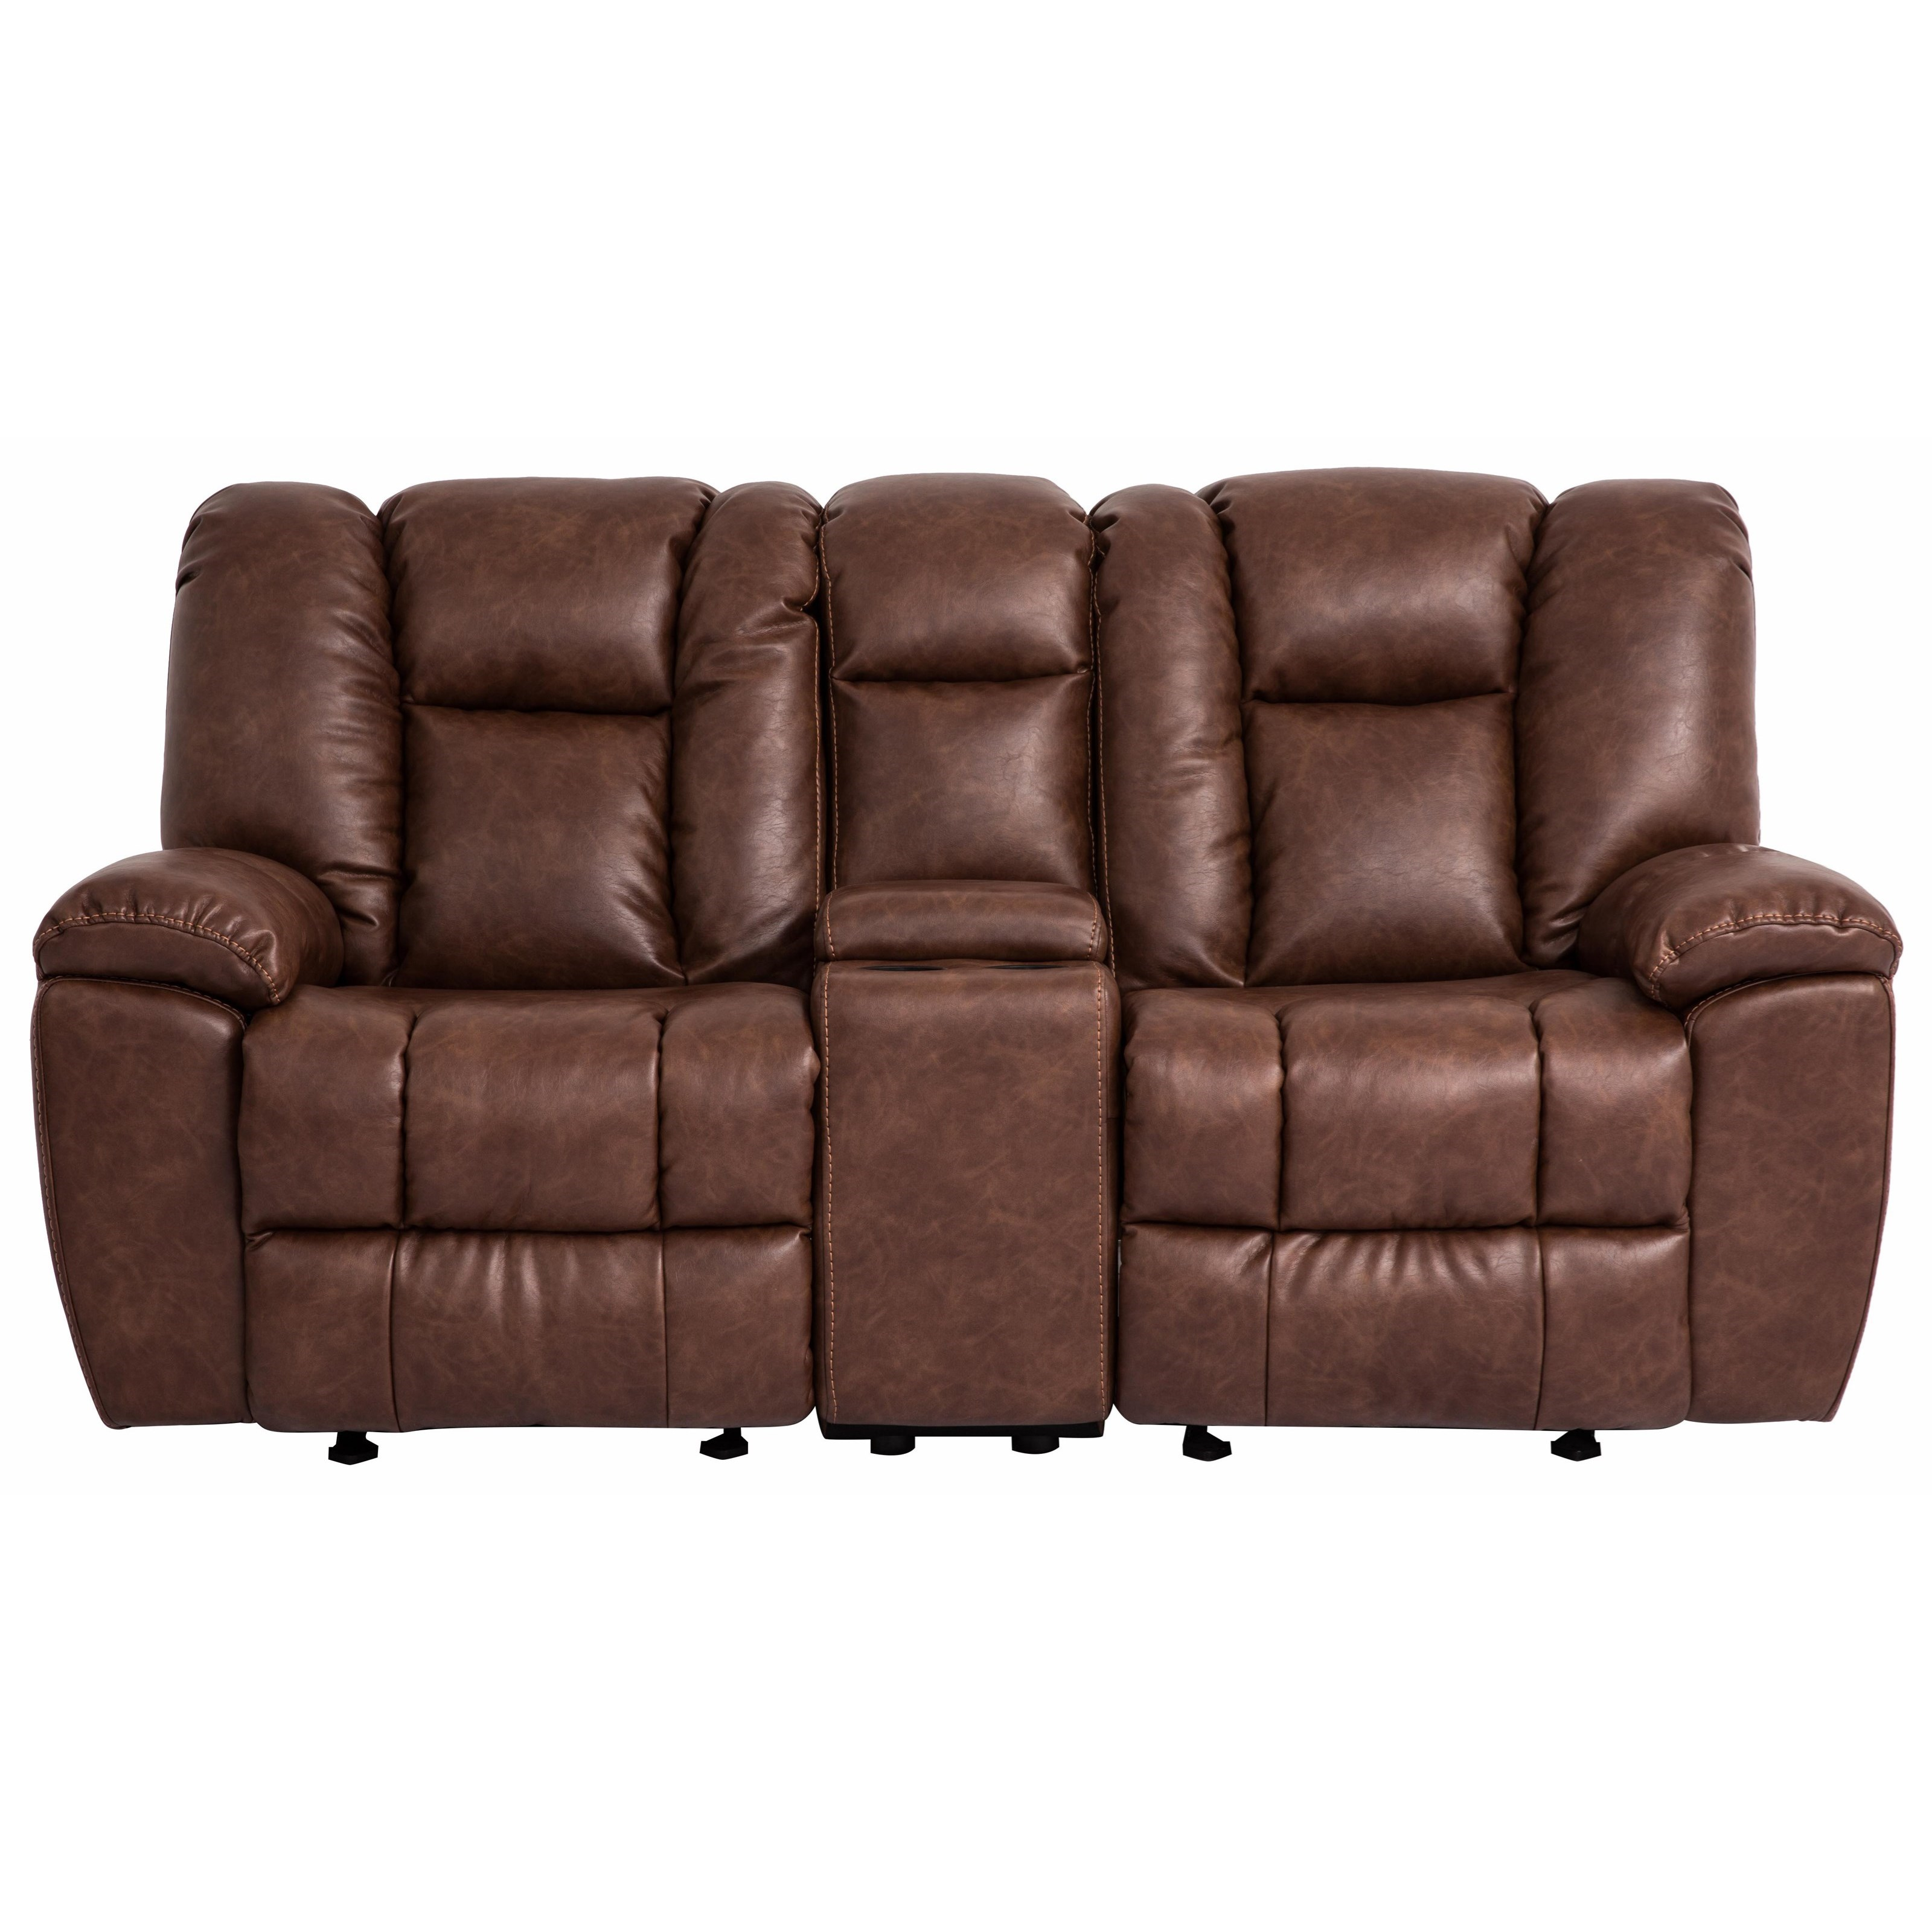 1017M Reclining Loveseat by Cheers Sofa at Lagniappe Home Store